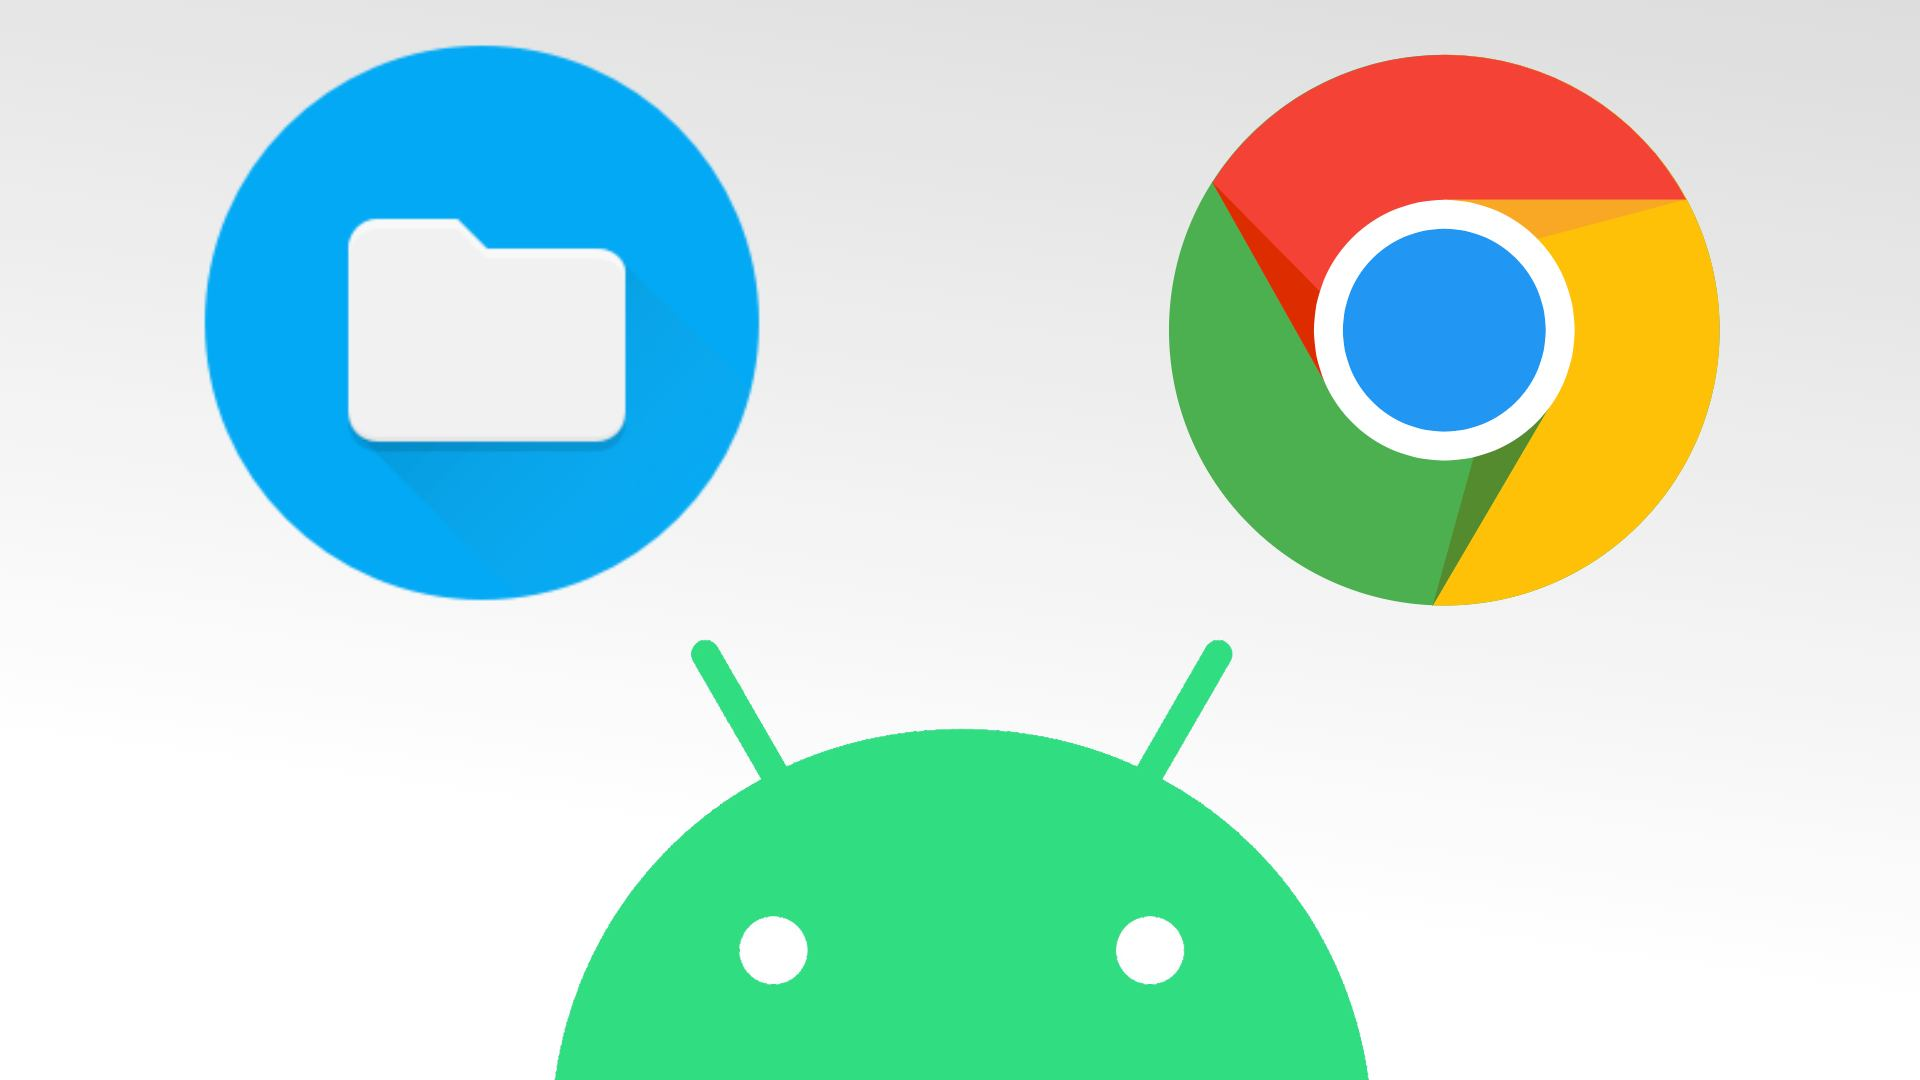 New Chrome OS Files App feature takes a major step towards Chrome OS & Android unification